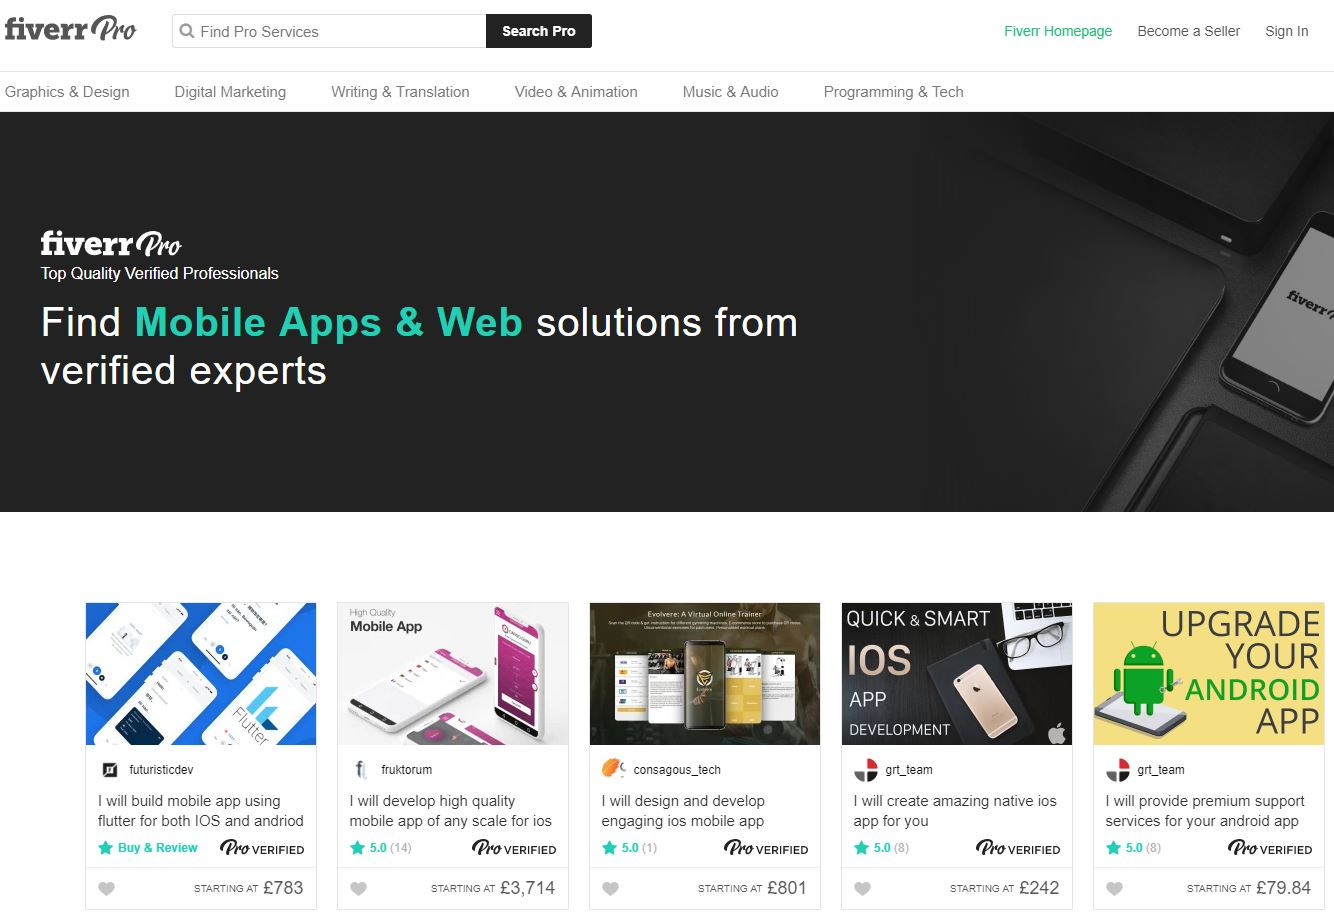 Where to hire top quality freelance software developers7 (2019_05_21 09_28_24 UTC).JPG